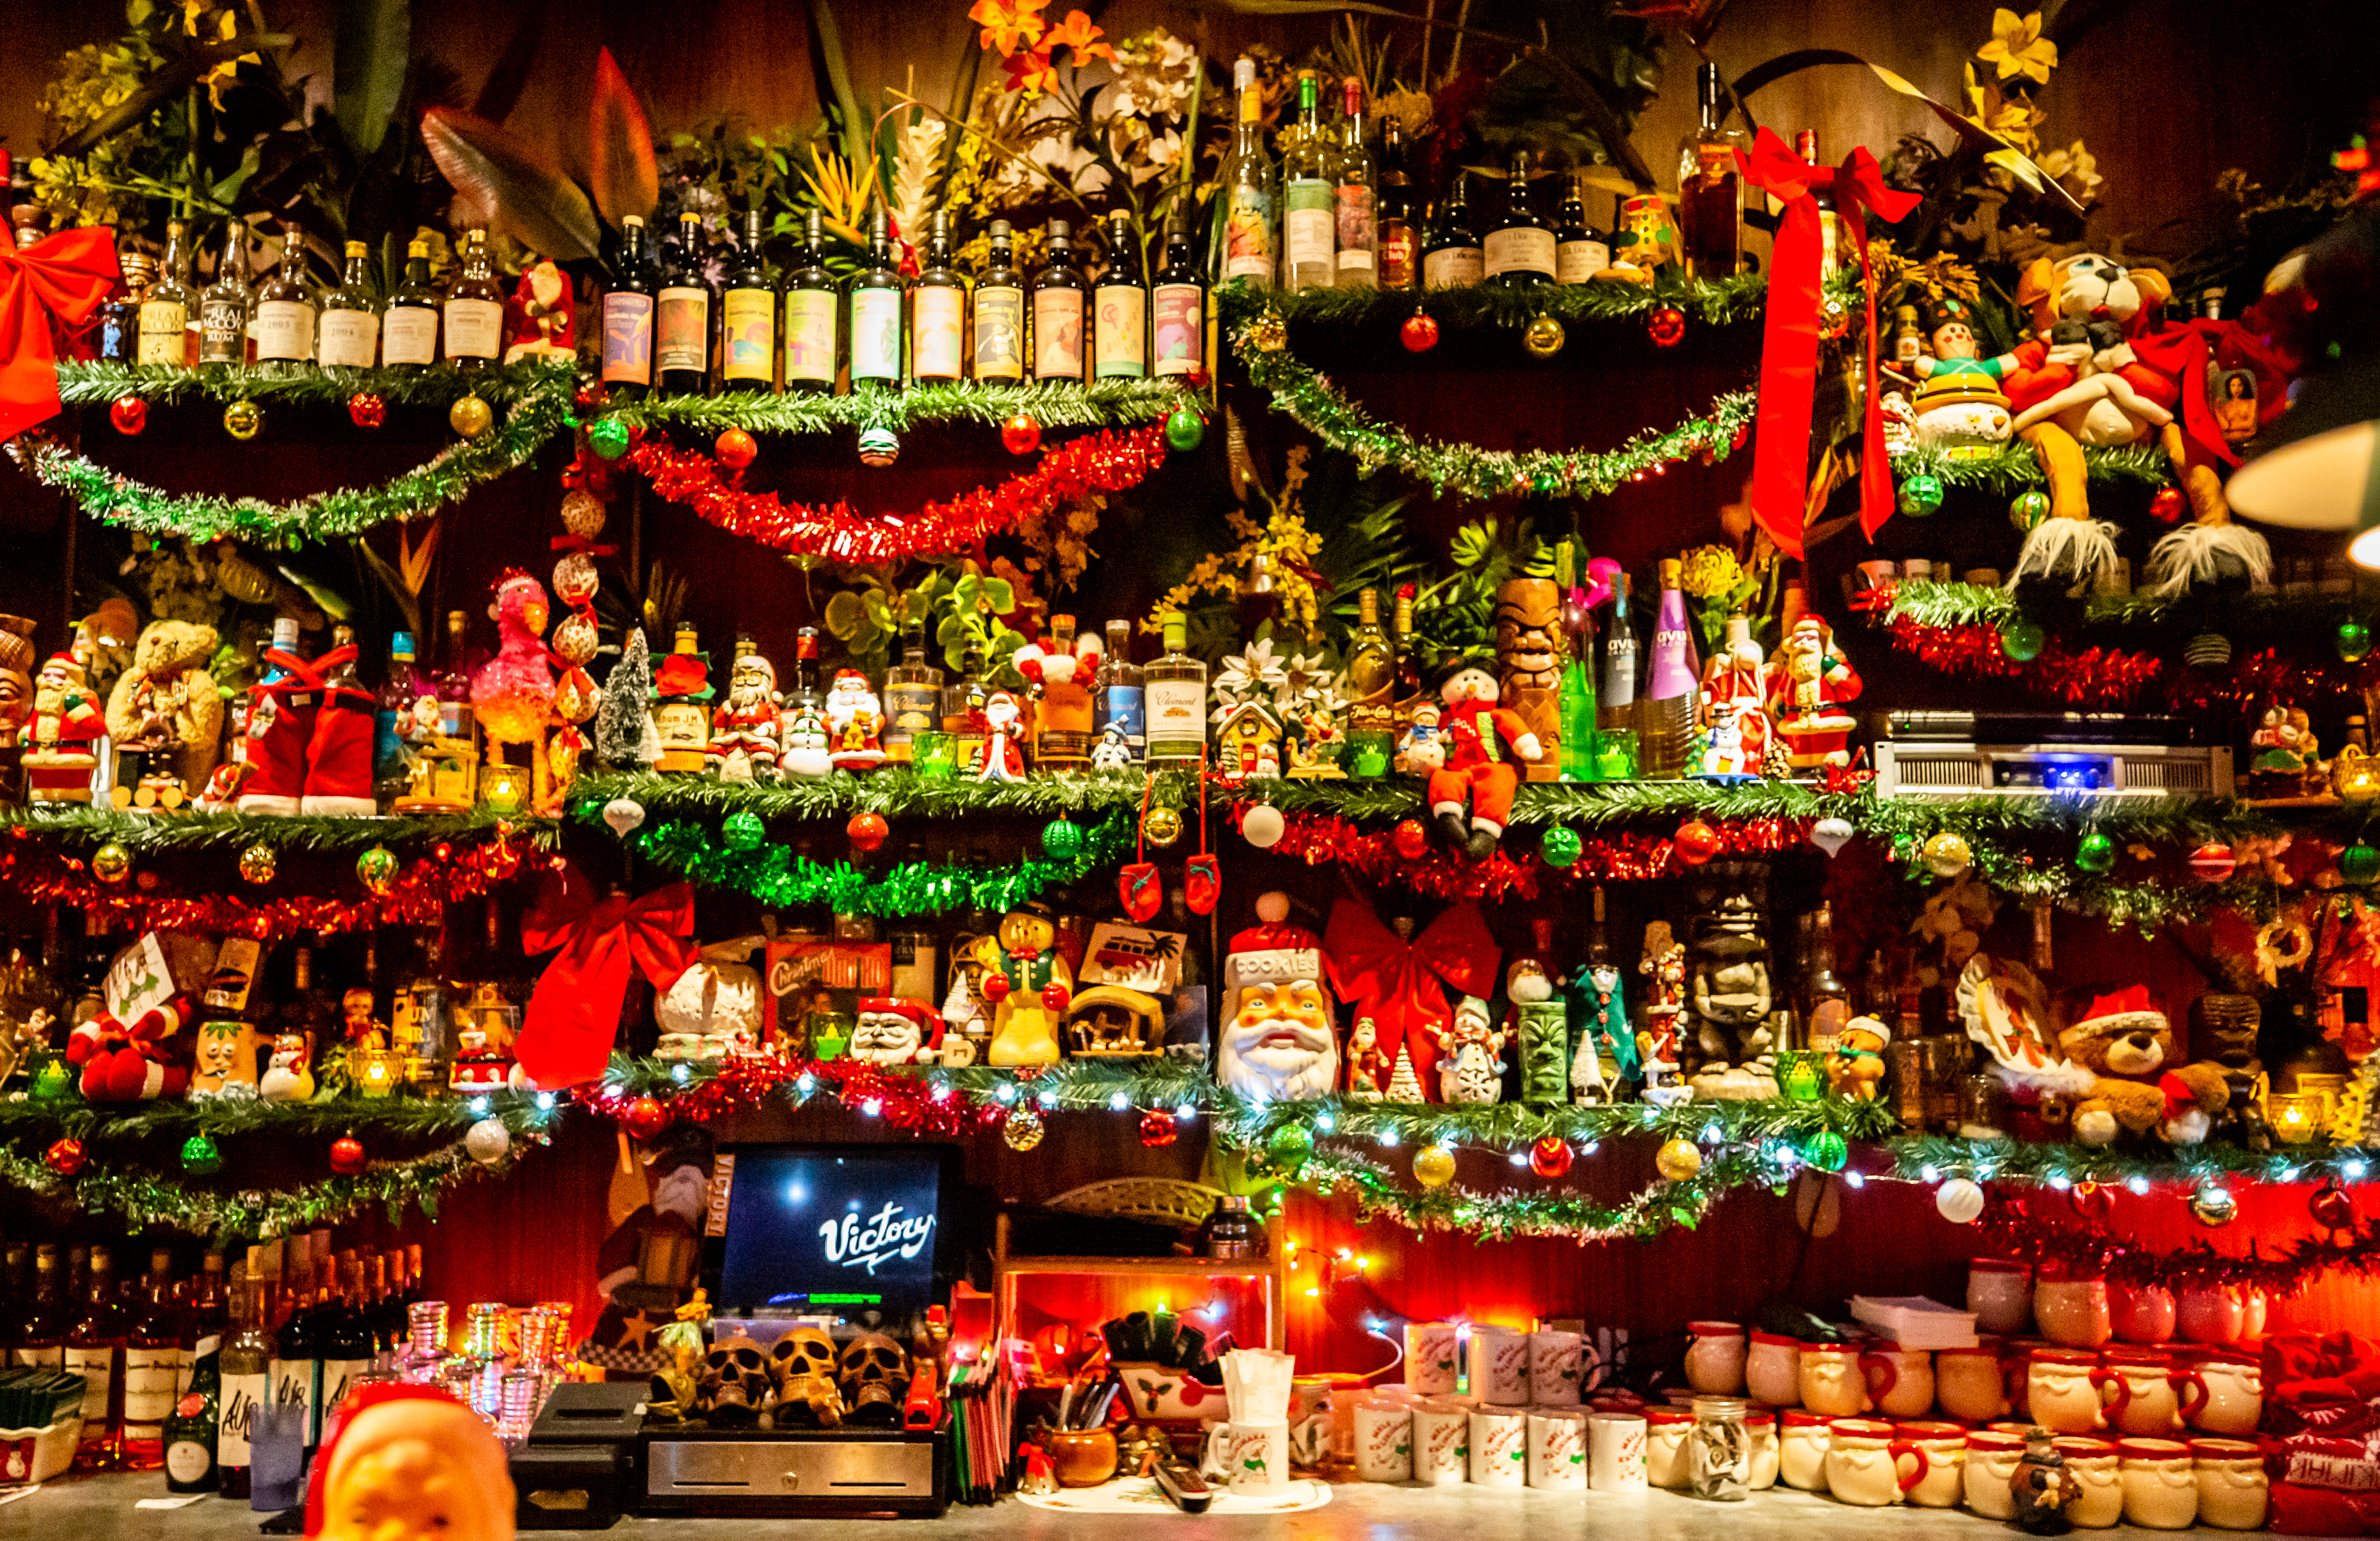 SOS Tiki Bar's back bar filled with bottles, garland, kitschy Santas, toys, and teddy bears